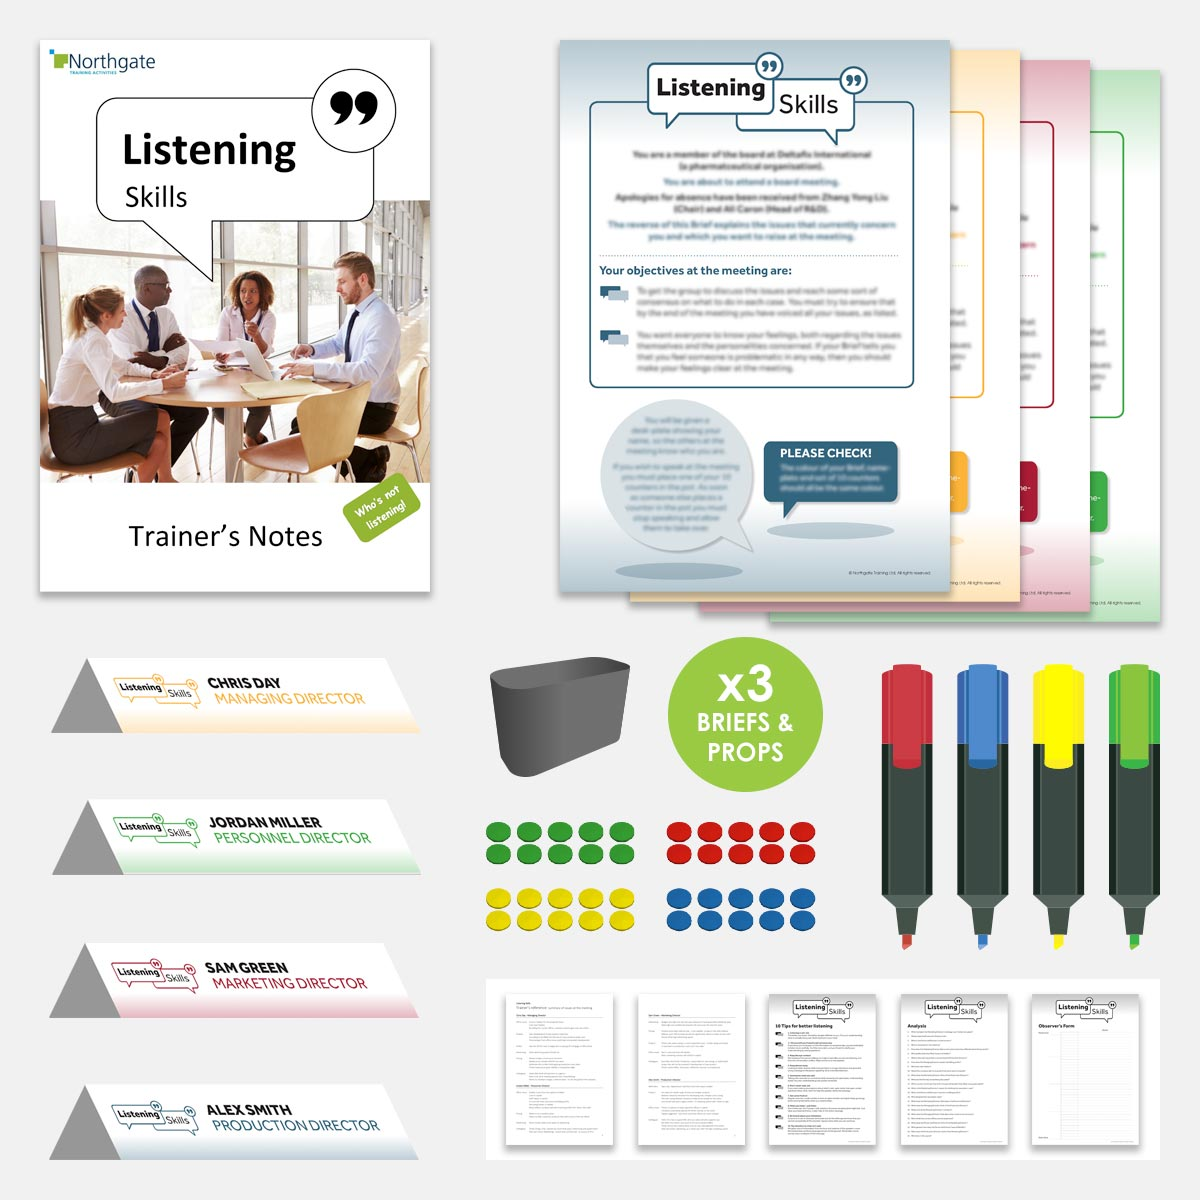 Listening Skills | Communication Training Activity